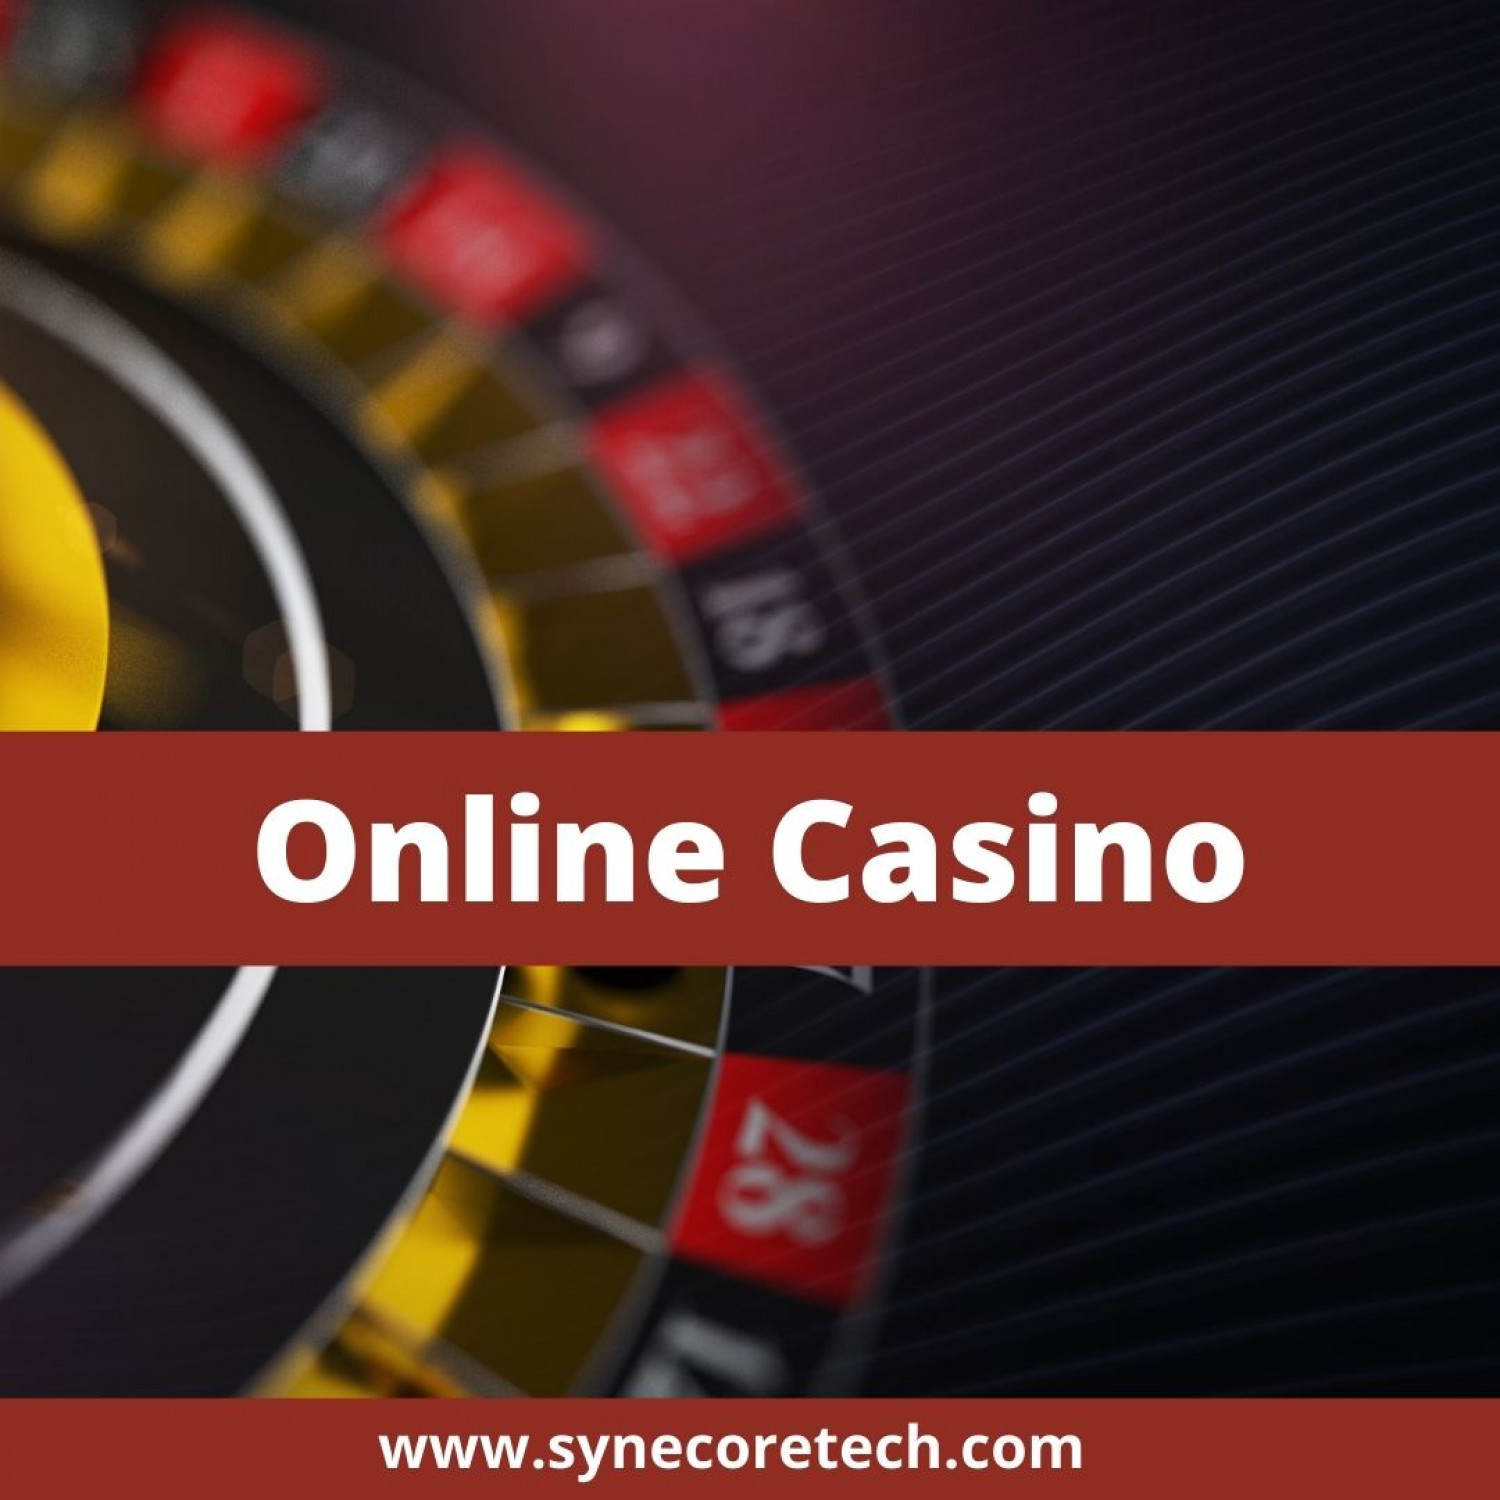 Online Poker Sites - Two Key Differences in Today's Work Infographic